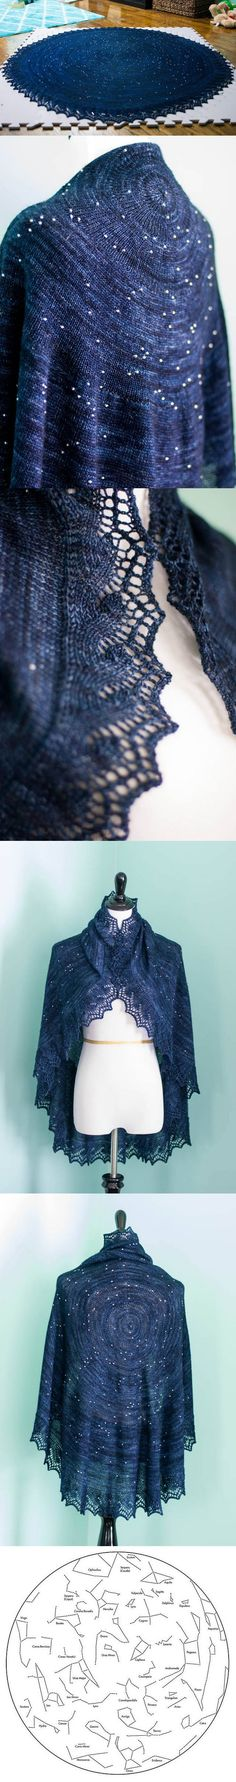 Star map shawl. It is beaded with over 350 beads to represent the night sky as seen from the North Pole. (I've met this shawl in person and it is AMAZING).